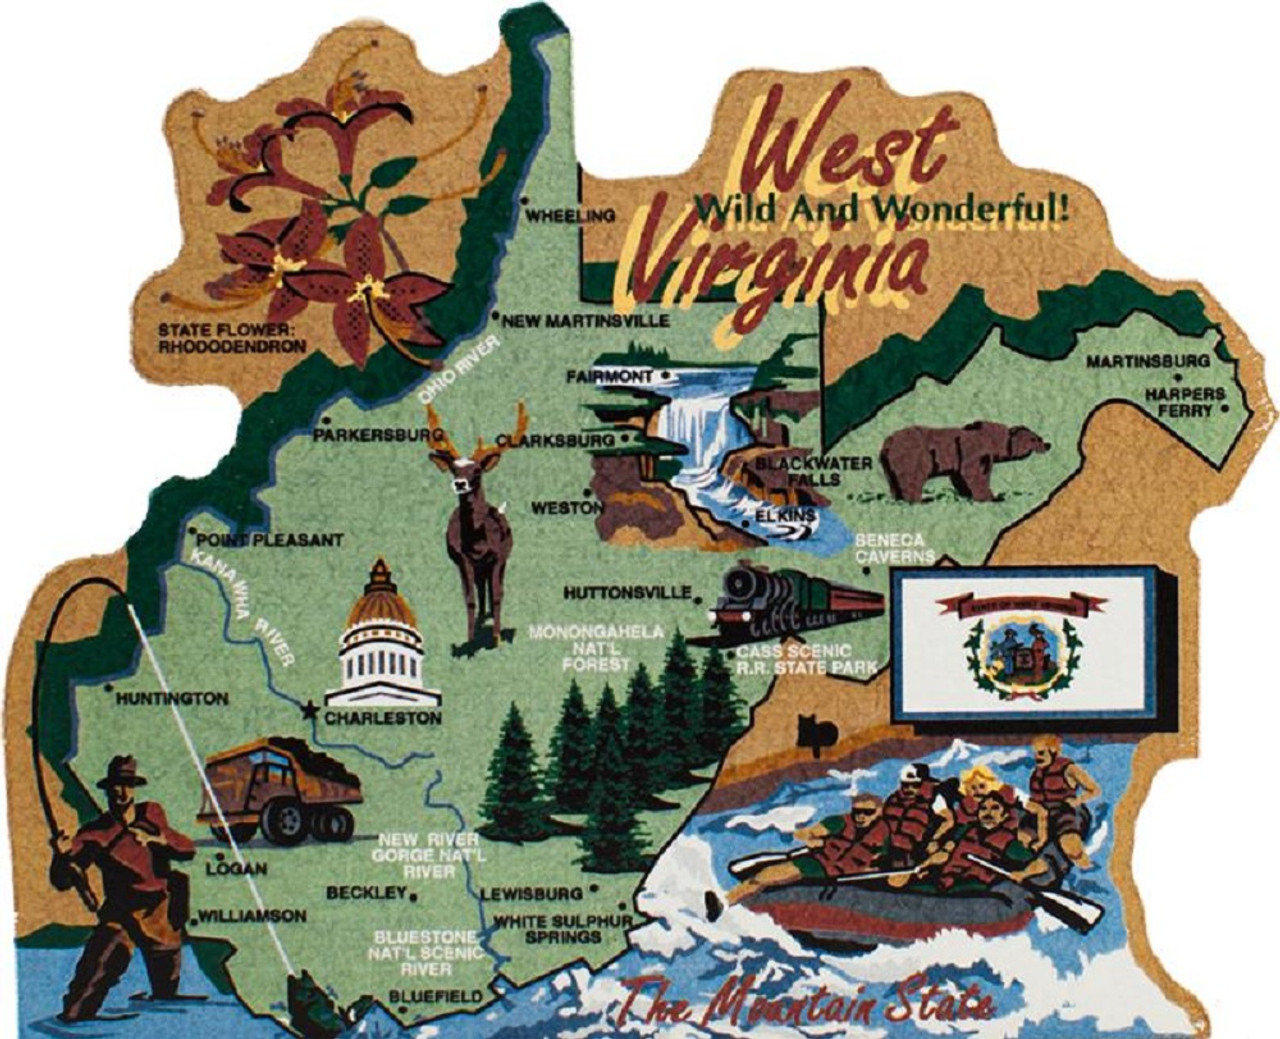 West Virginia State Map Wooden Keepsake Cat\'s Meow Village|USA ...